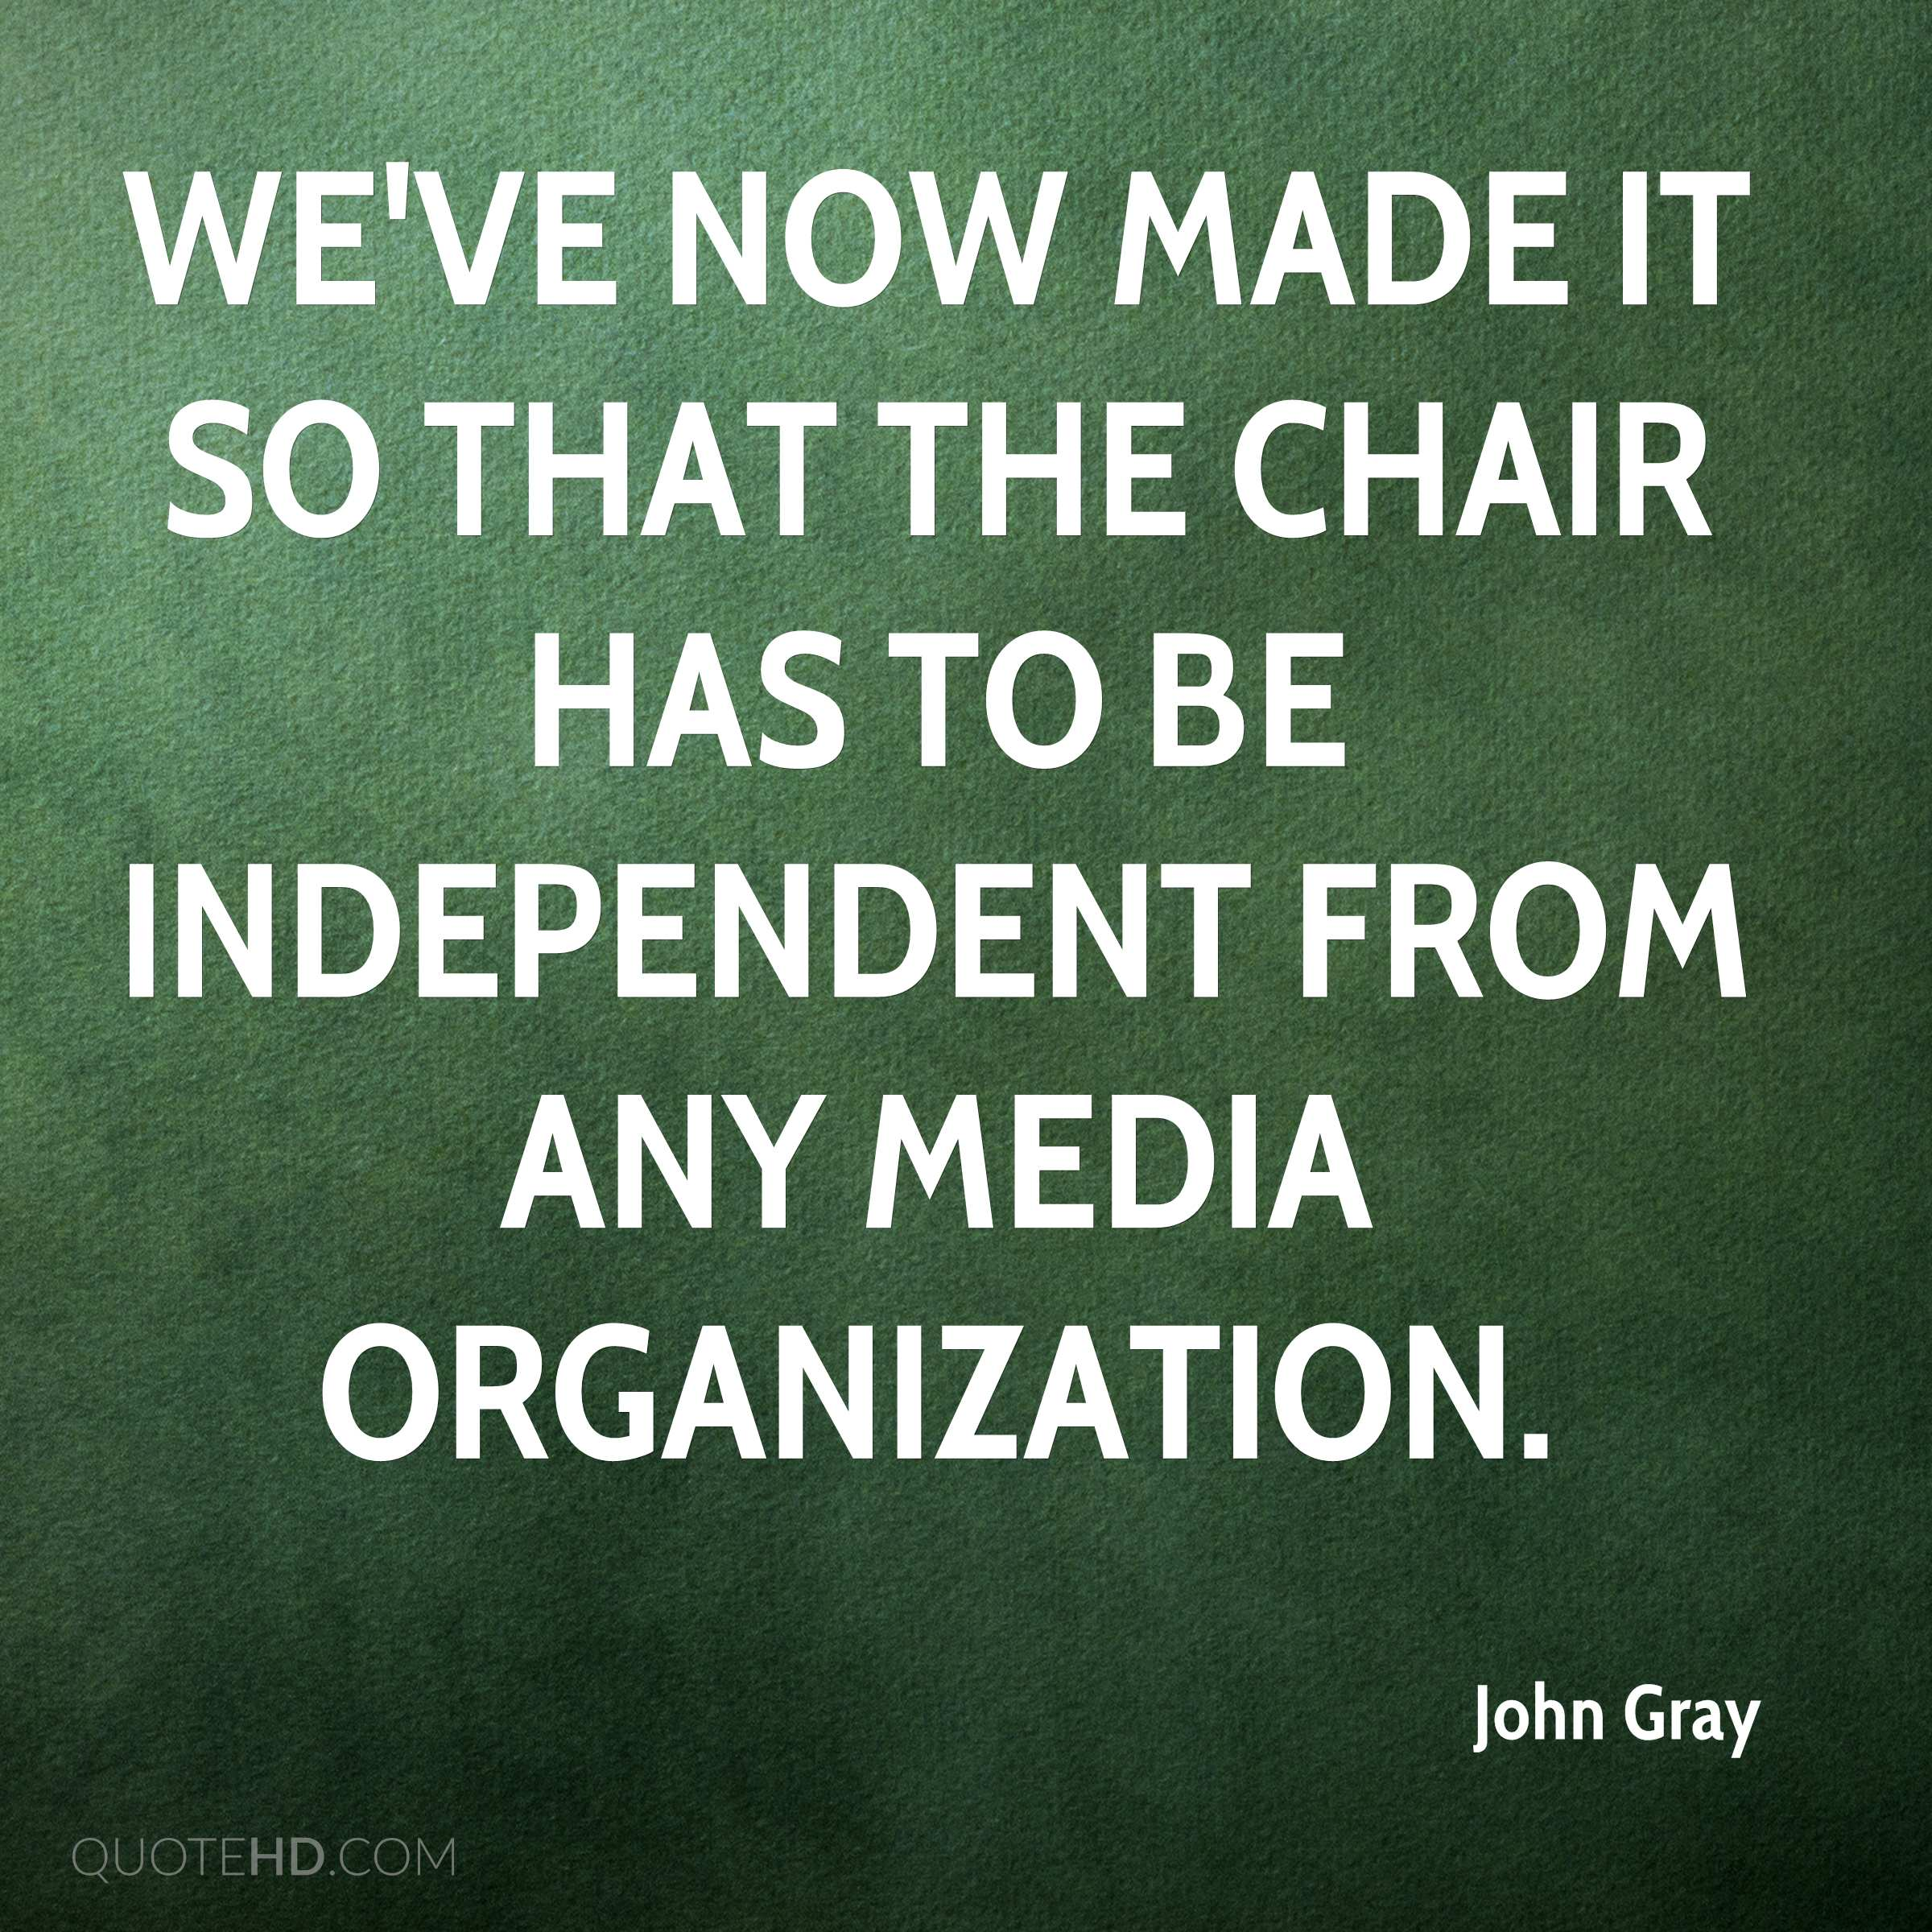 We've now made it so that the chair has to be independent from any media organization.